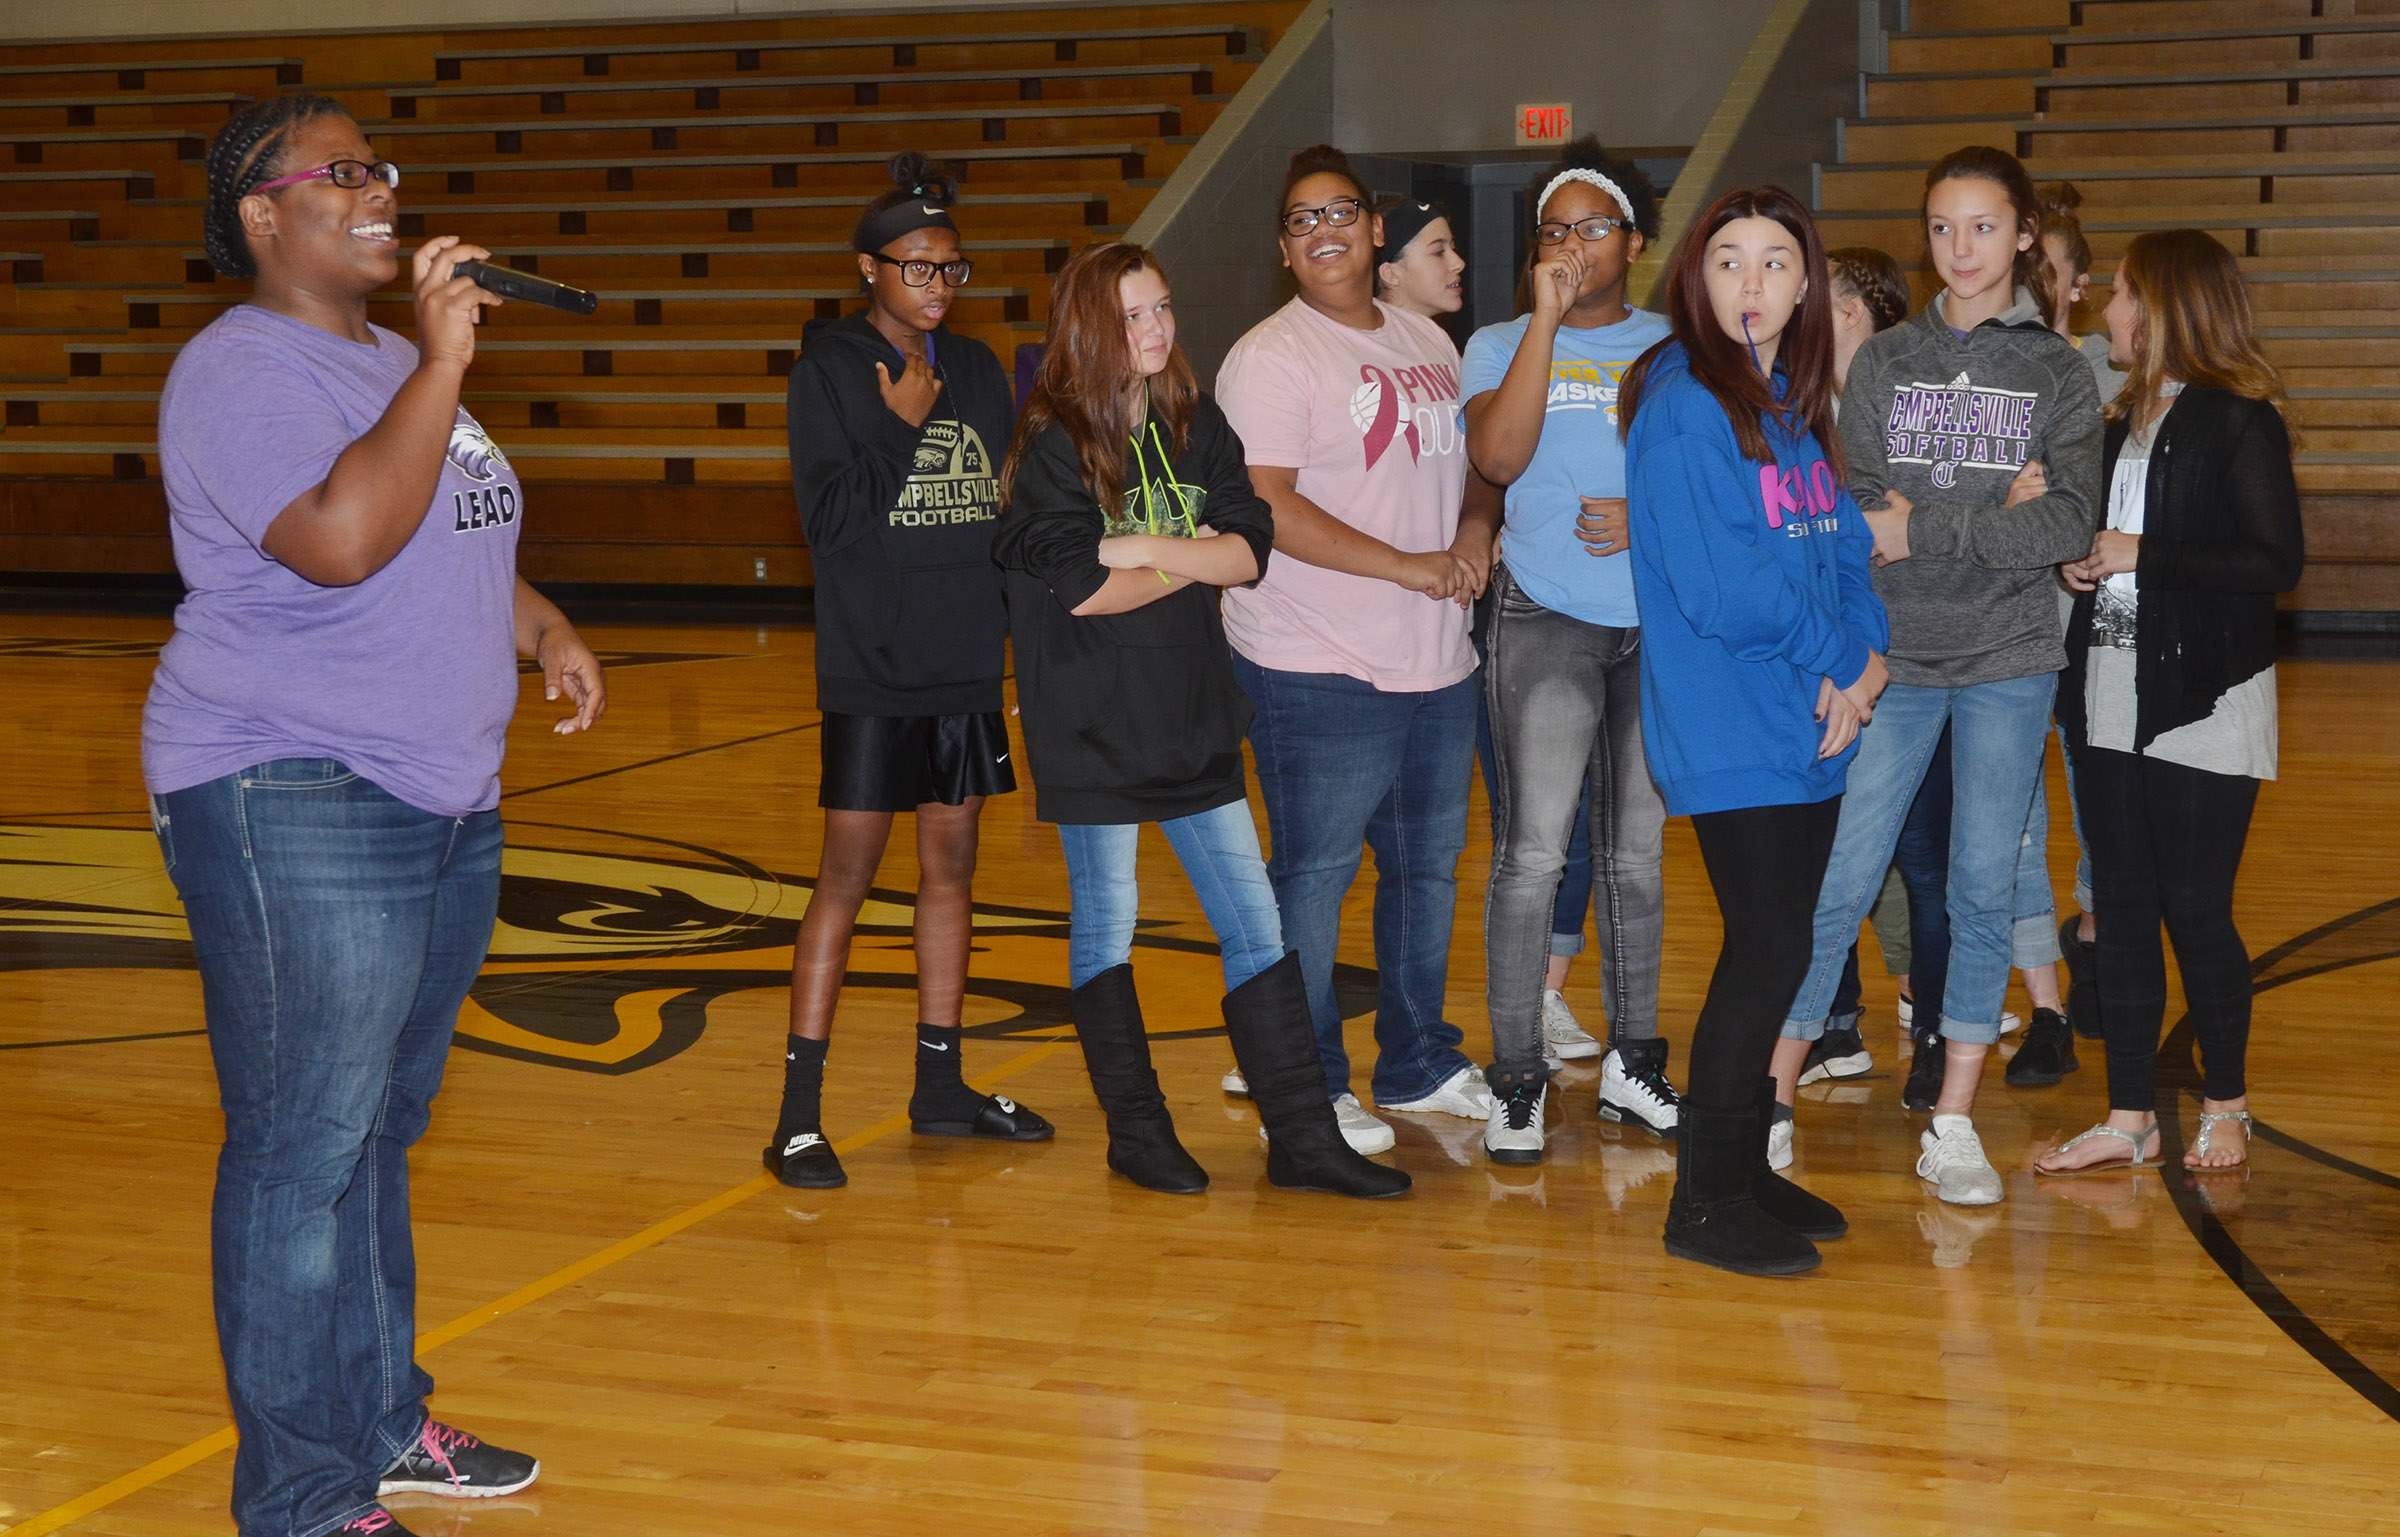 CMS girls' basketball head coach Tiarra Cecil recognizes her players, who recently won the Central Kentucky Middle School Athletic Conference eighth-grader championship for the first time in 20 years.